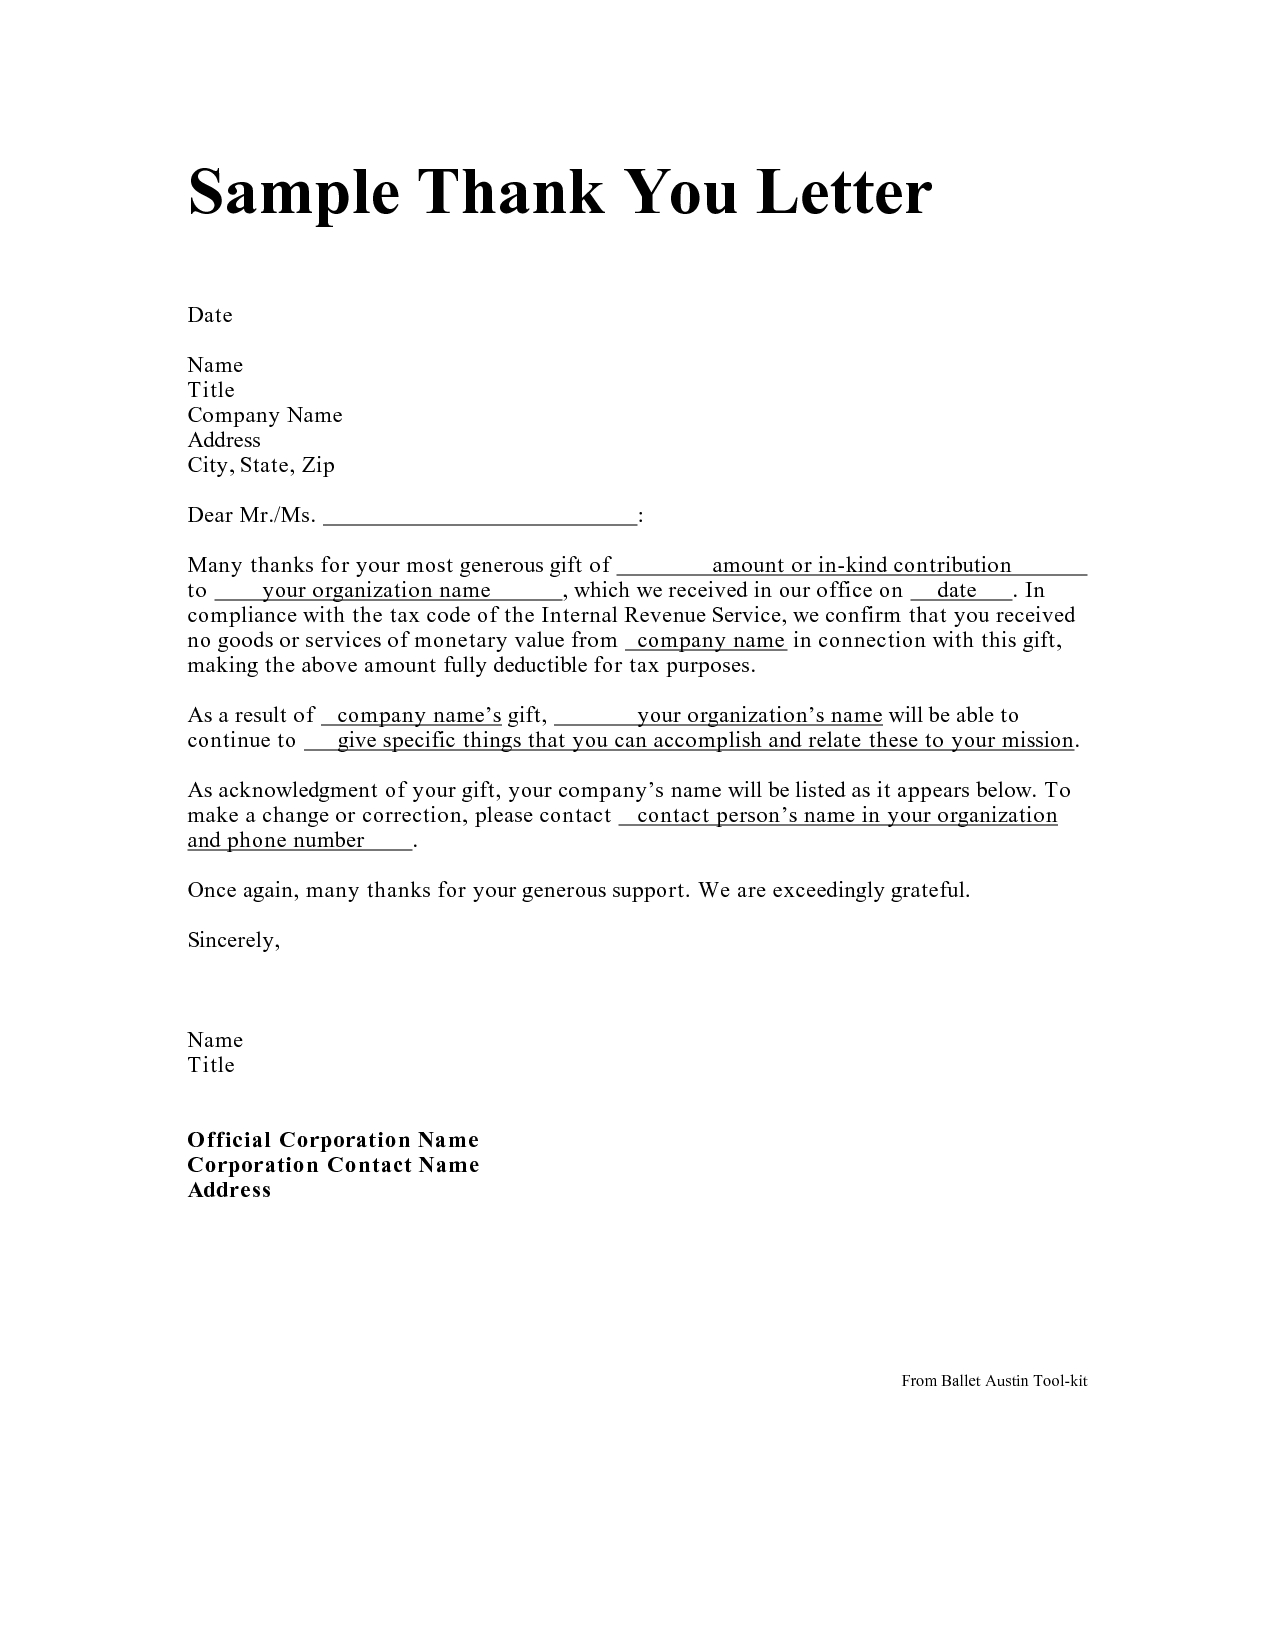 Letter to solicit donations template collection letter templates letter to solicit donations template personal thank you letter personal thank you letter samples spiritdancerdesigns Images